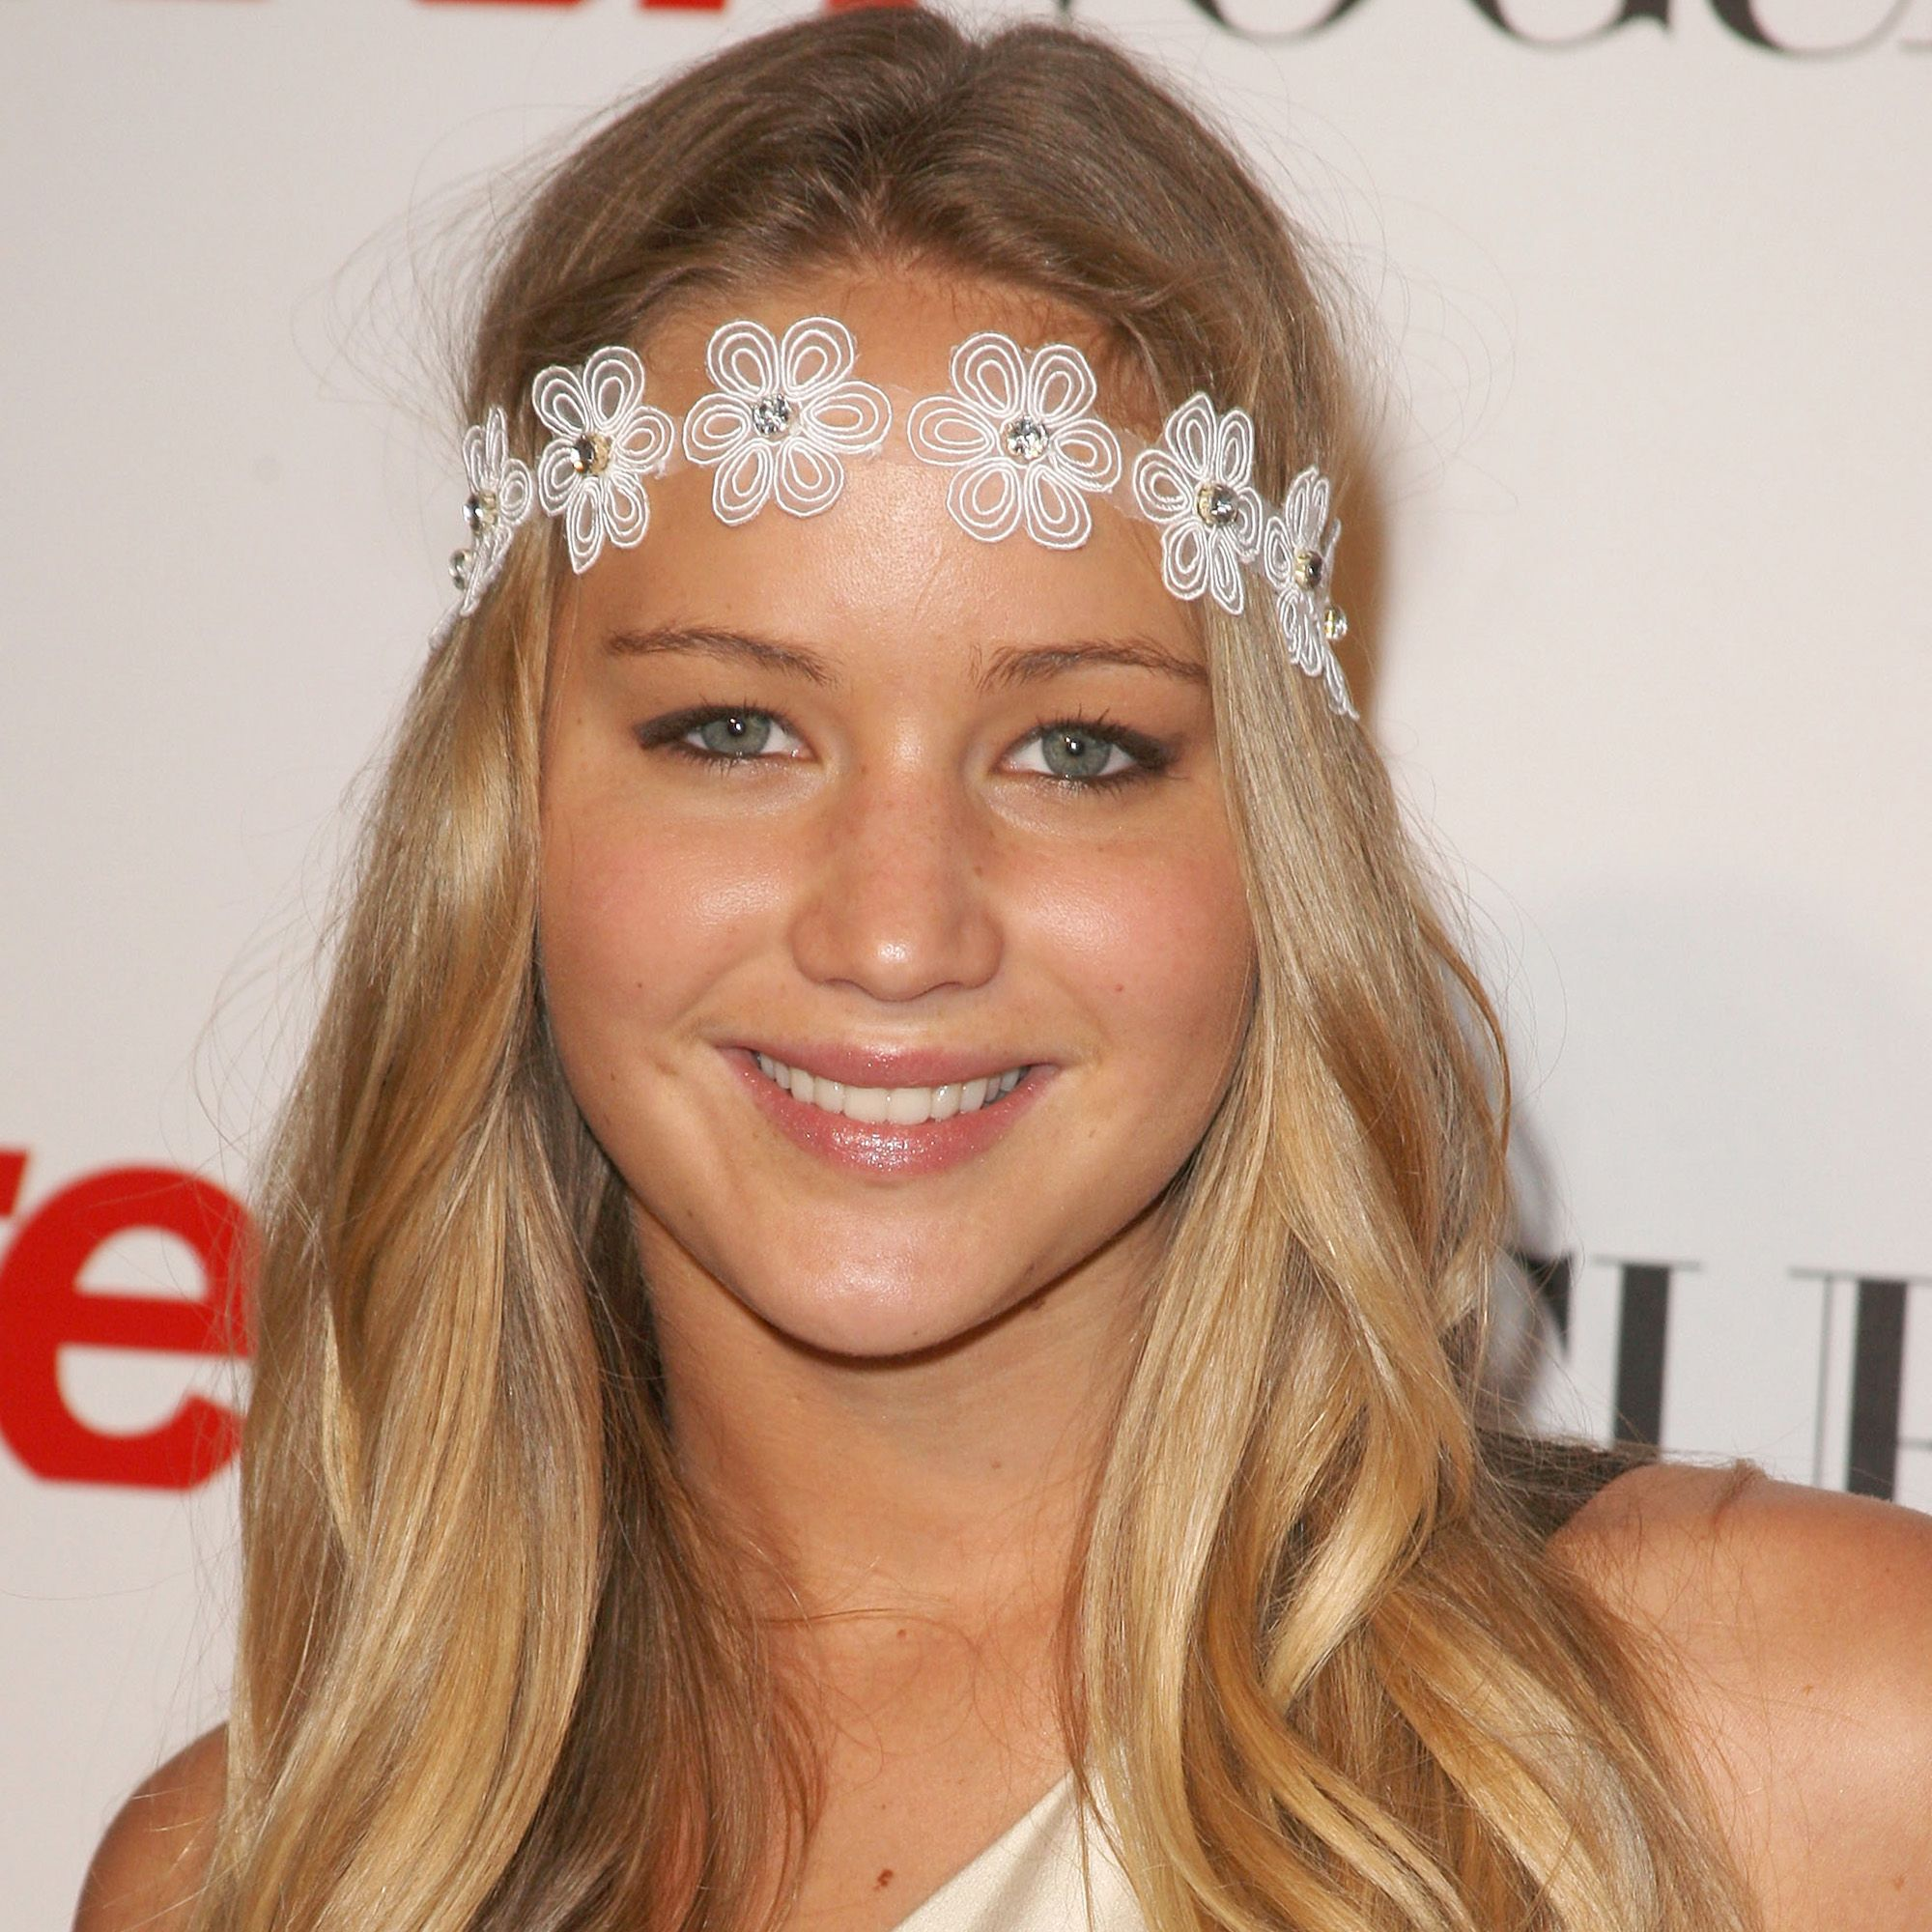 Jennifer Lawrence arrives to the 6th Annual Teen Vogue Young Hollywood Party on September 18, 2008 in Los Angeles, California. (Photo by Jason Merritt/FilmMagic)